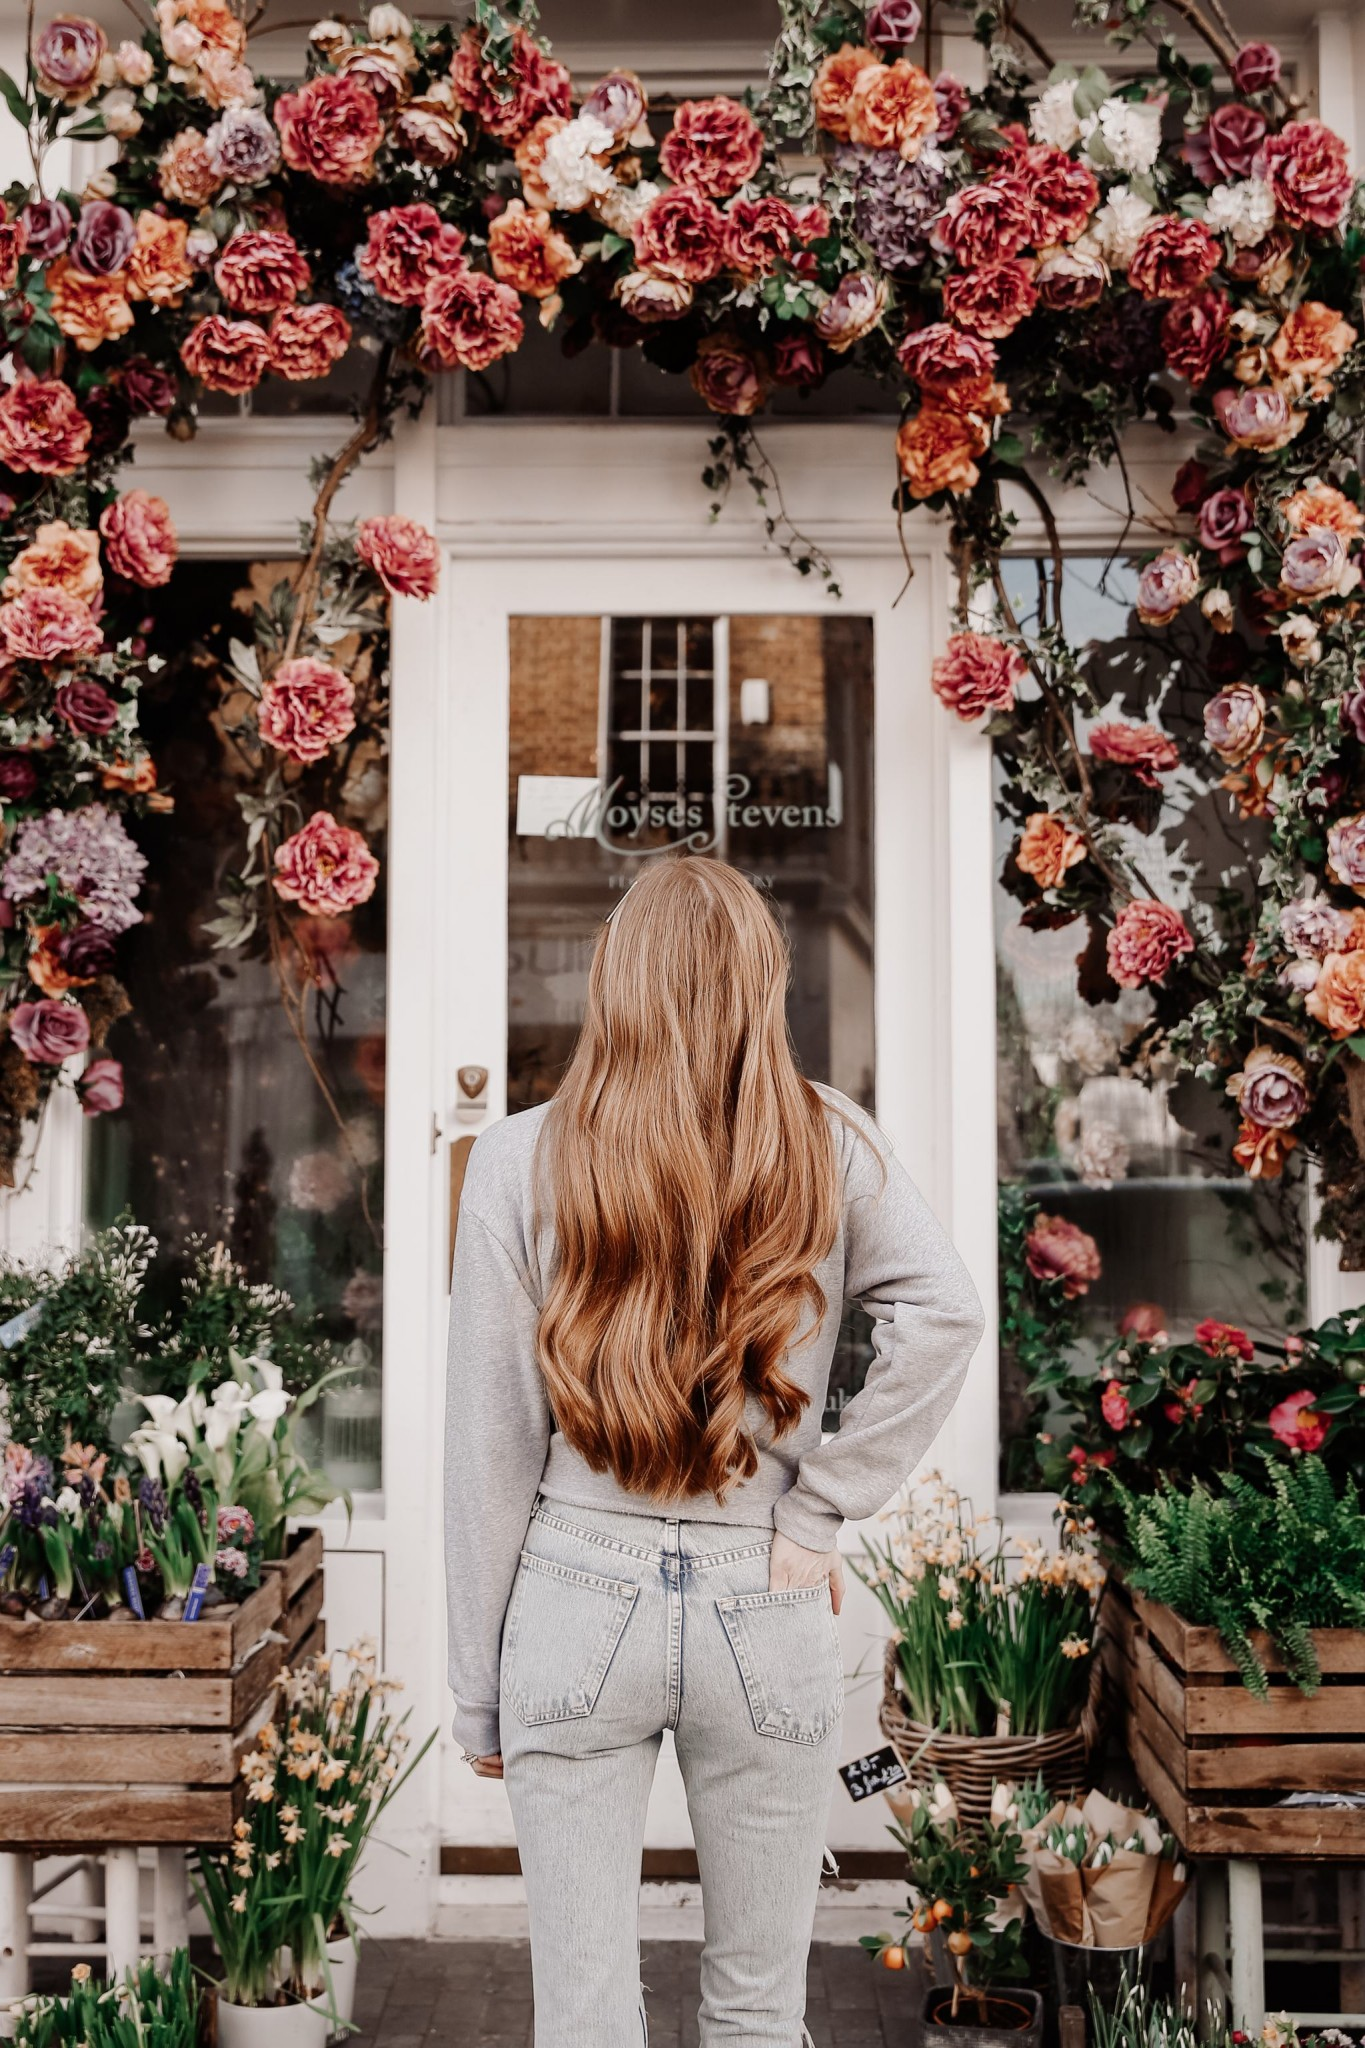 Mollie Moore is a London based fashion and lifestyle blog